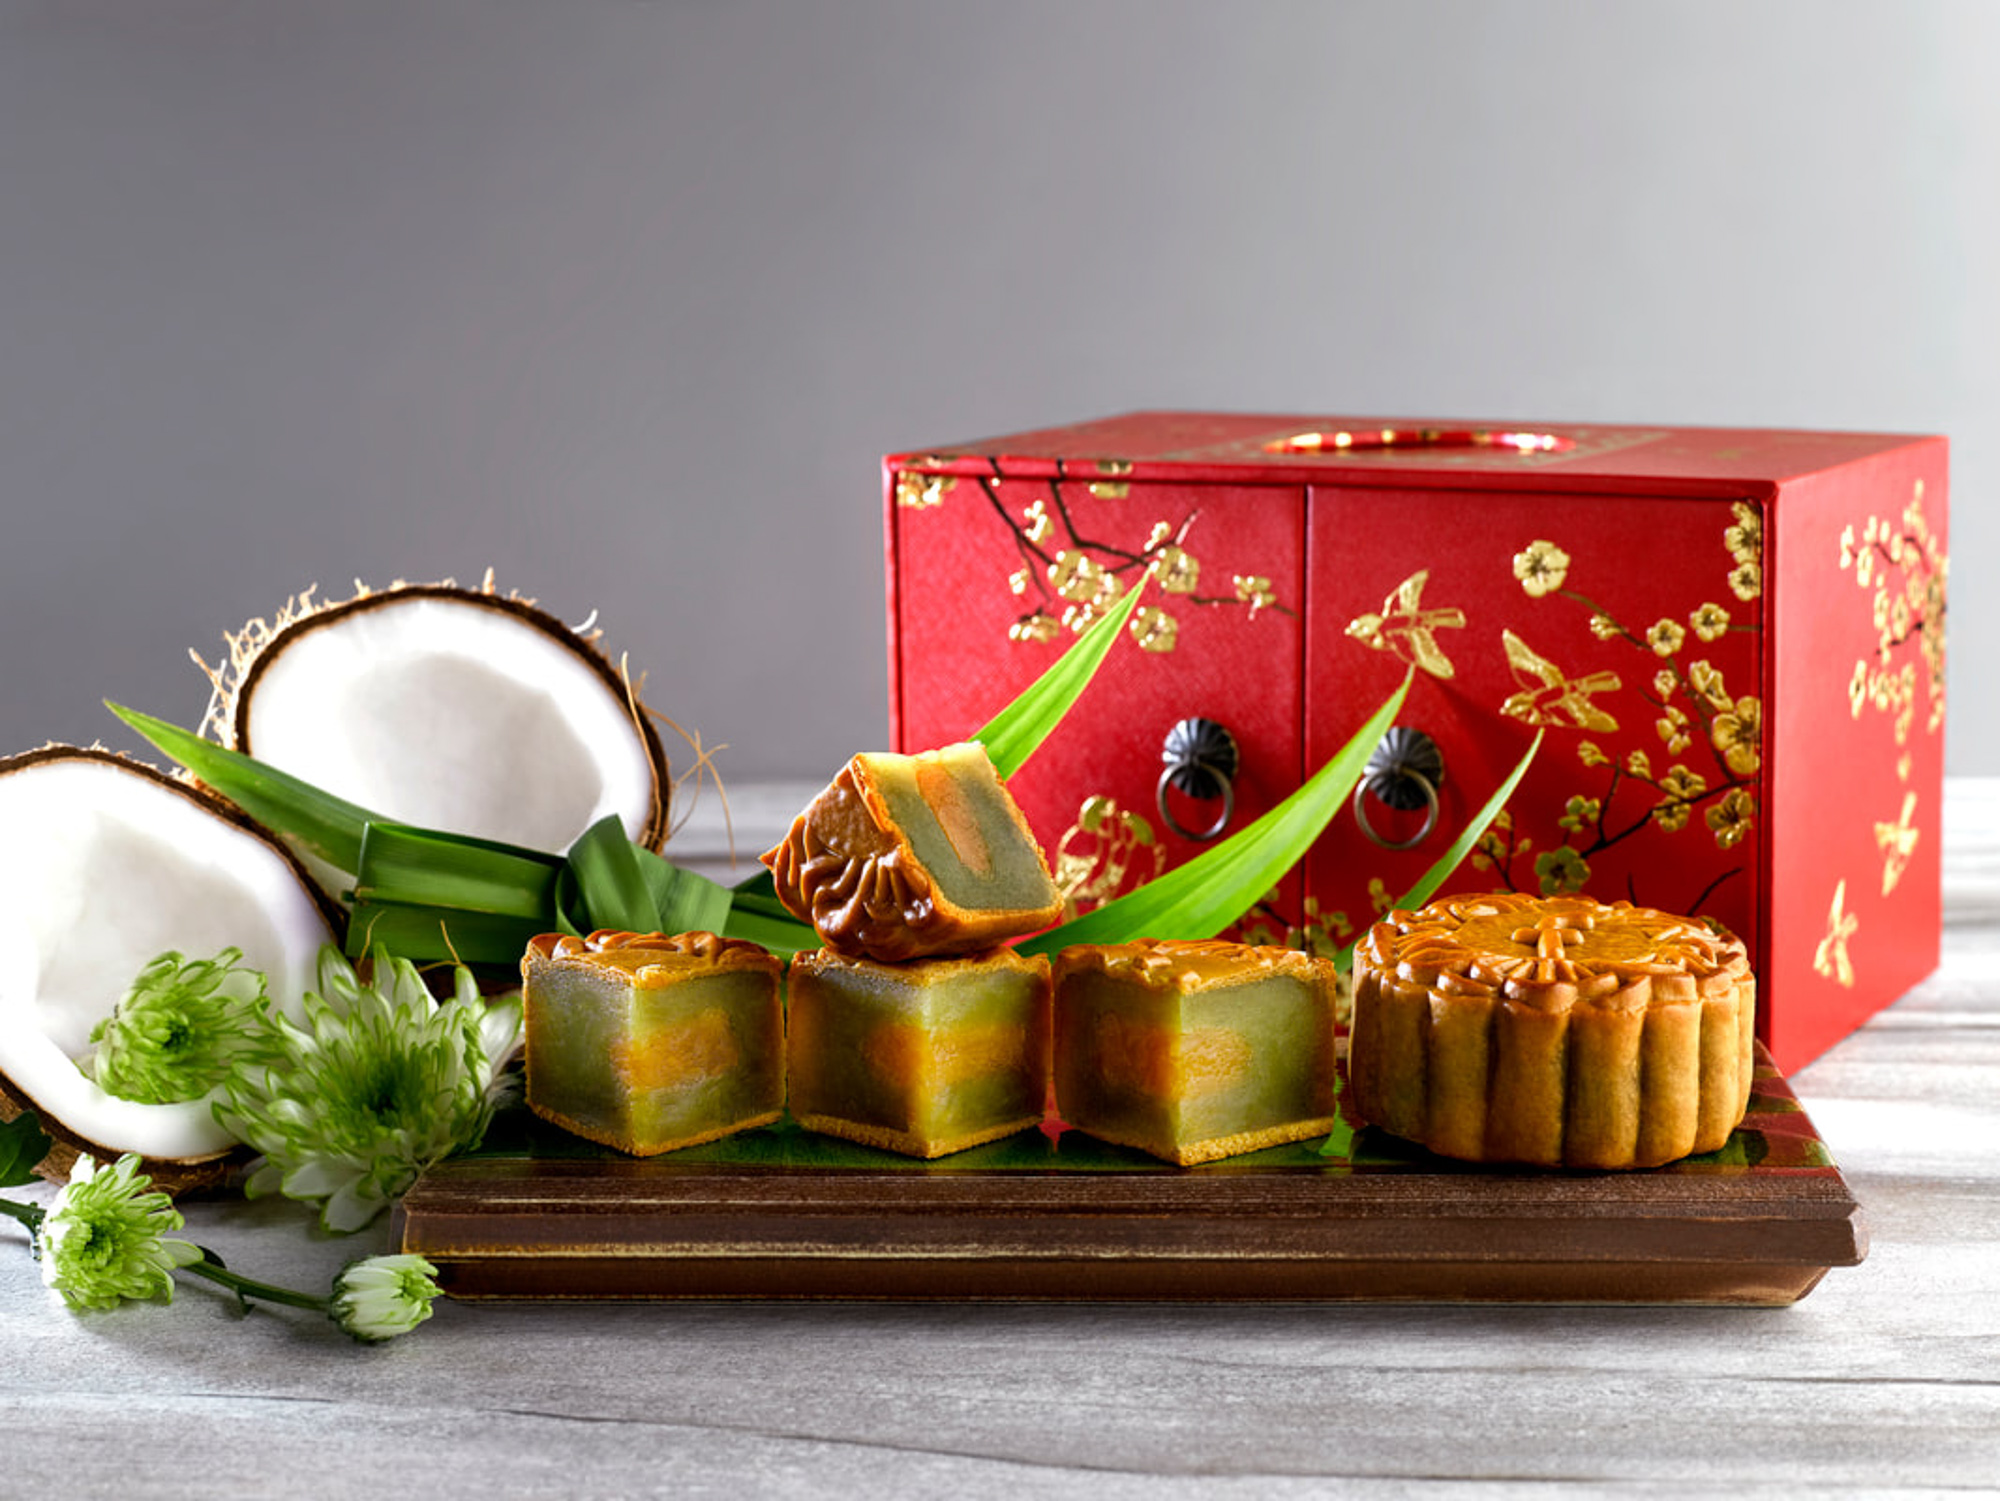 Mid-Autumn-2017-at-Jade-Restaurant-The-Fullerton-Hotel-Singapore-pandan-with-coconut-baked-mooncakes.jpg